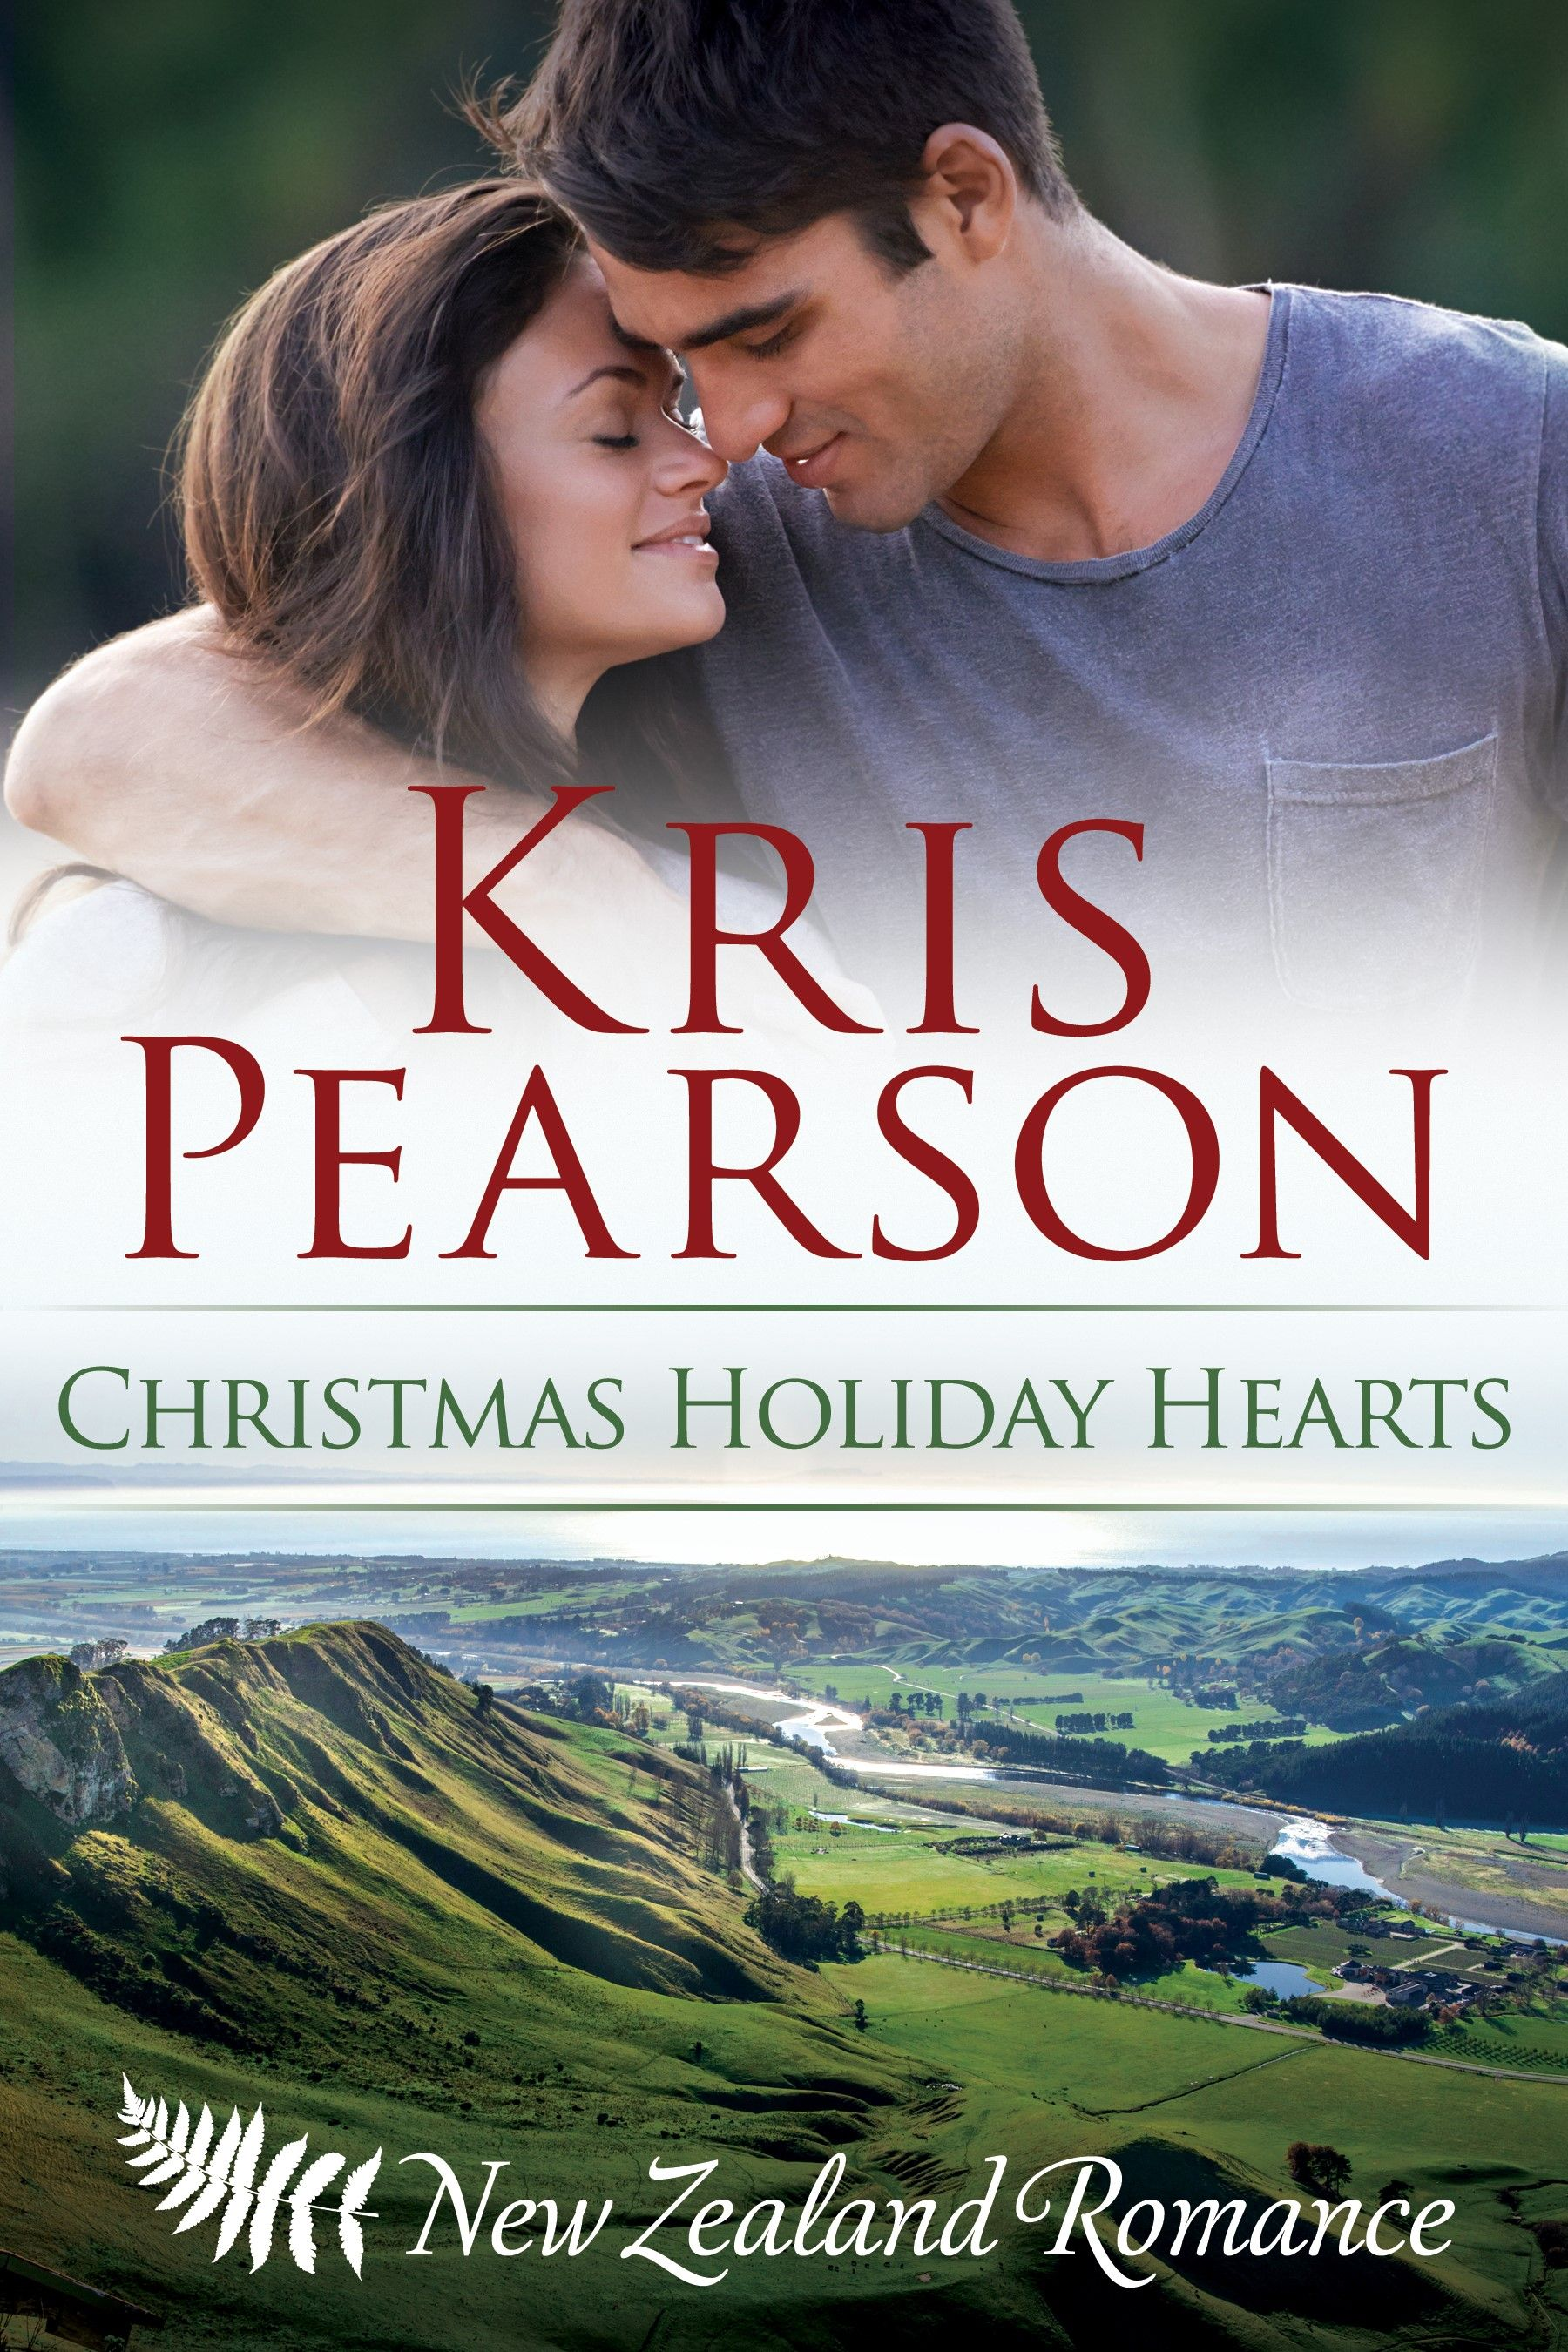 In this heartwrenching holiday romance, a devastating